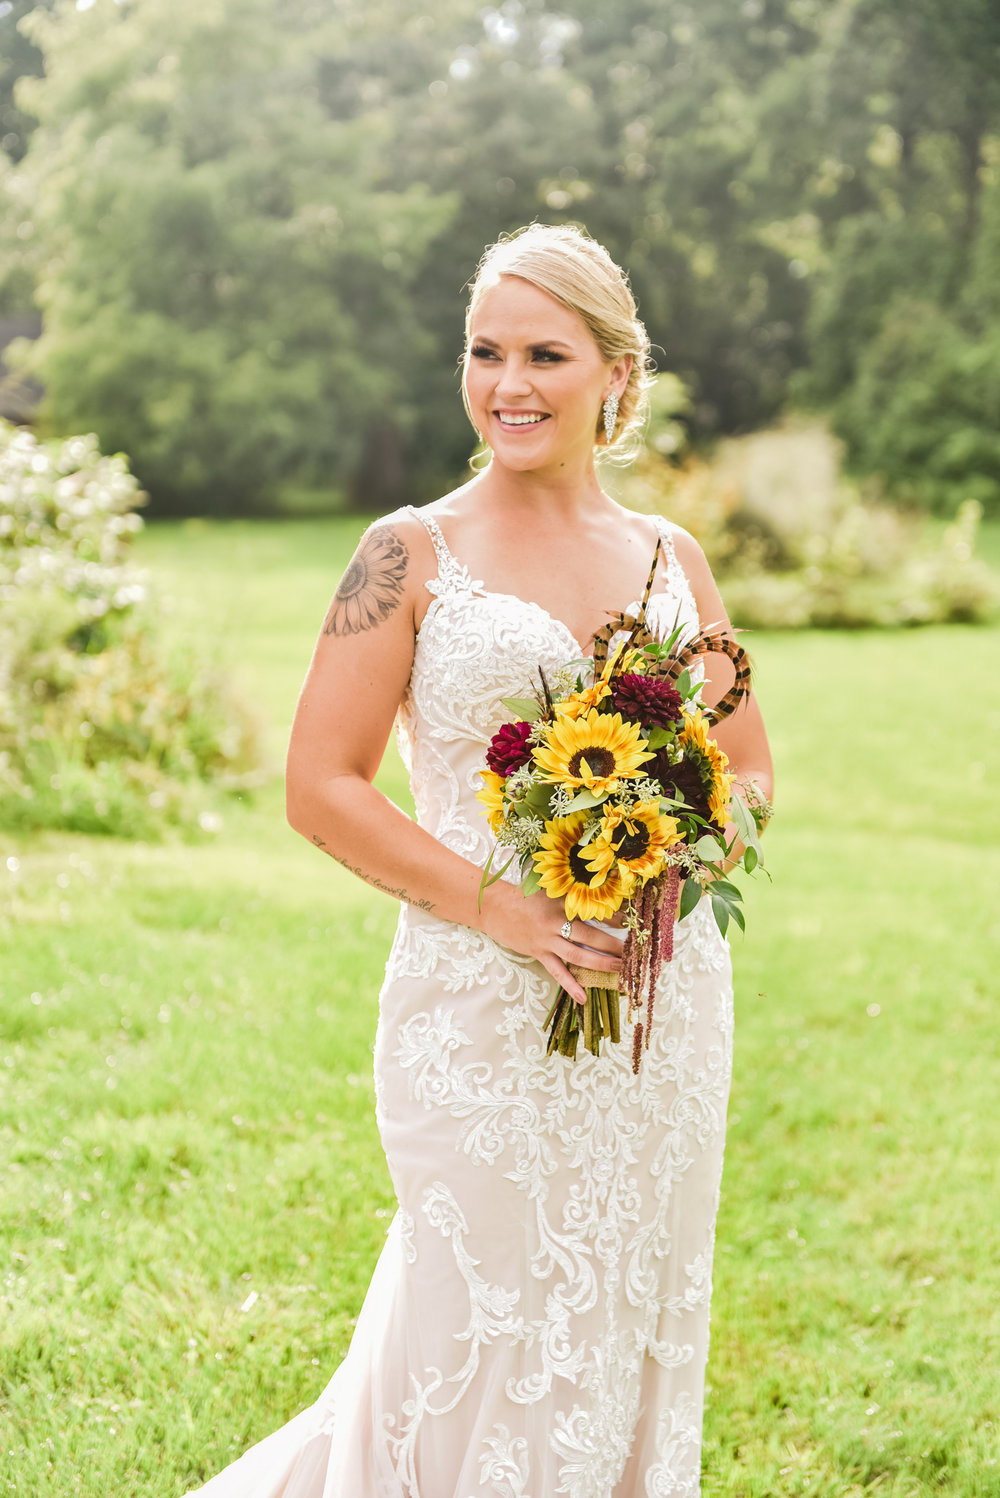 Cobblestone_Wedding_Barn_Rochester_Wedding_JILL_STUDIO_Rochester_NY_Photographer_DSC_7558.jpg